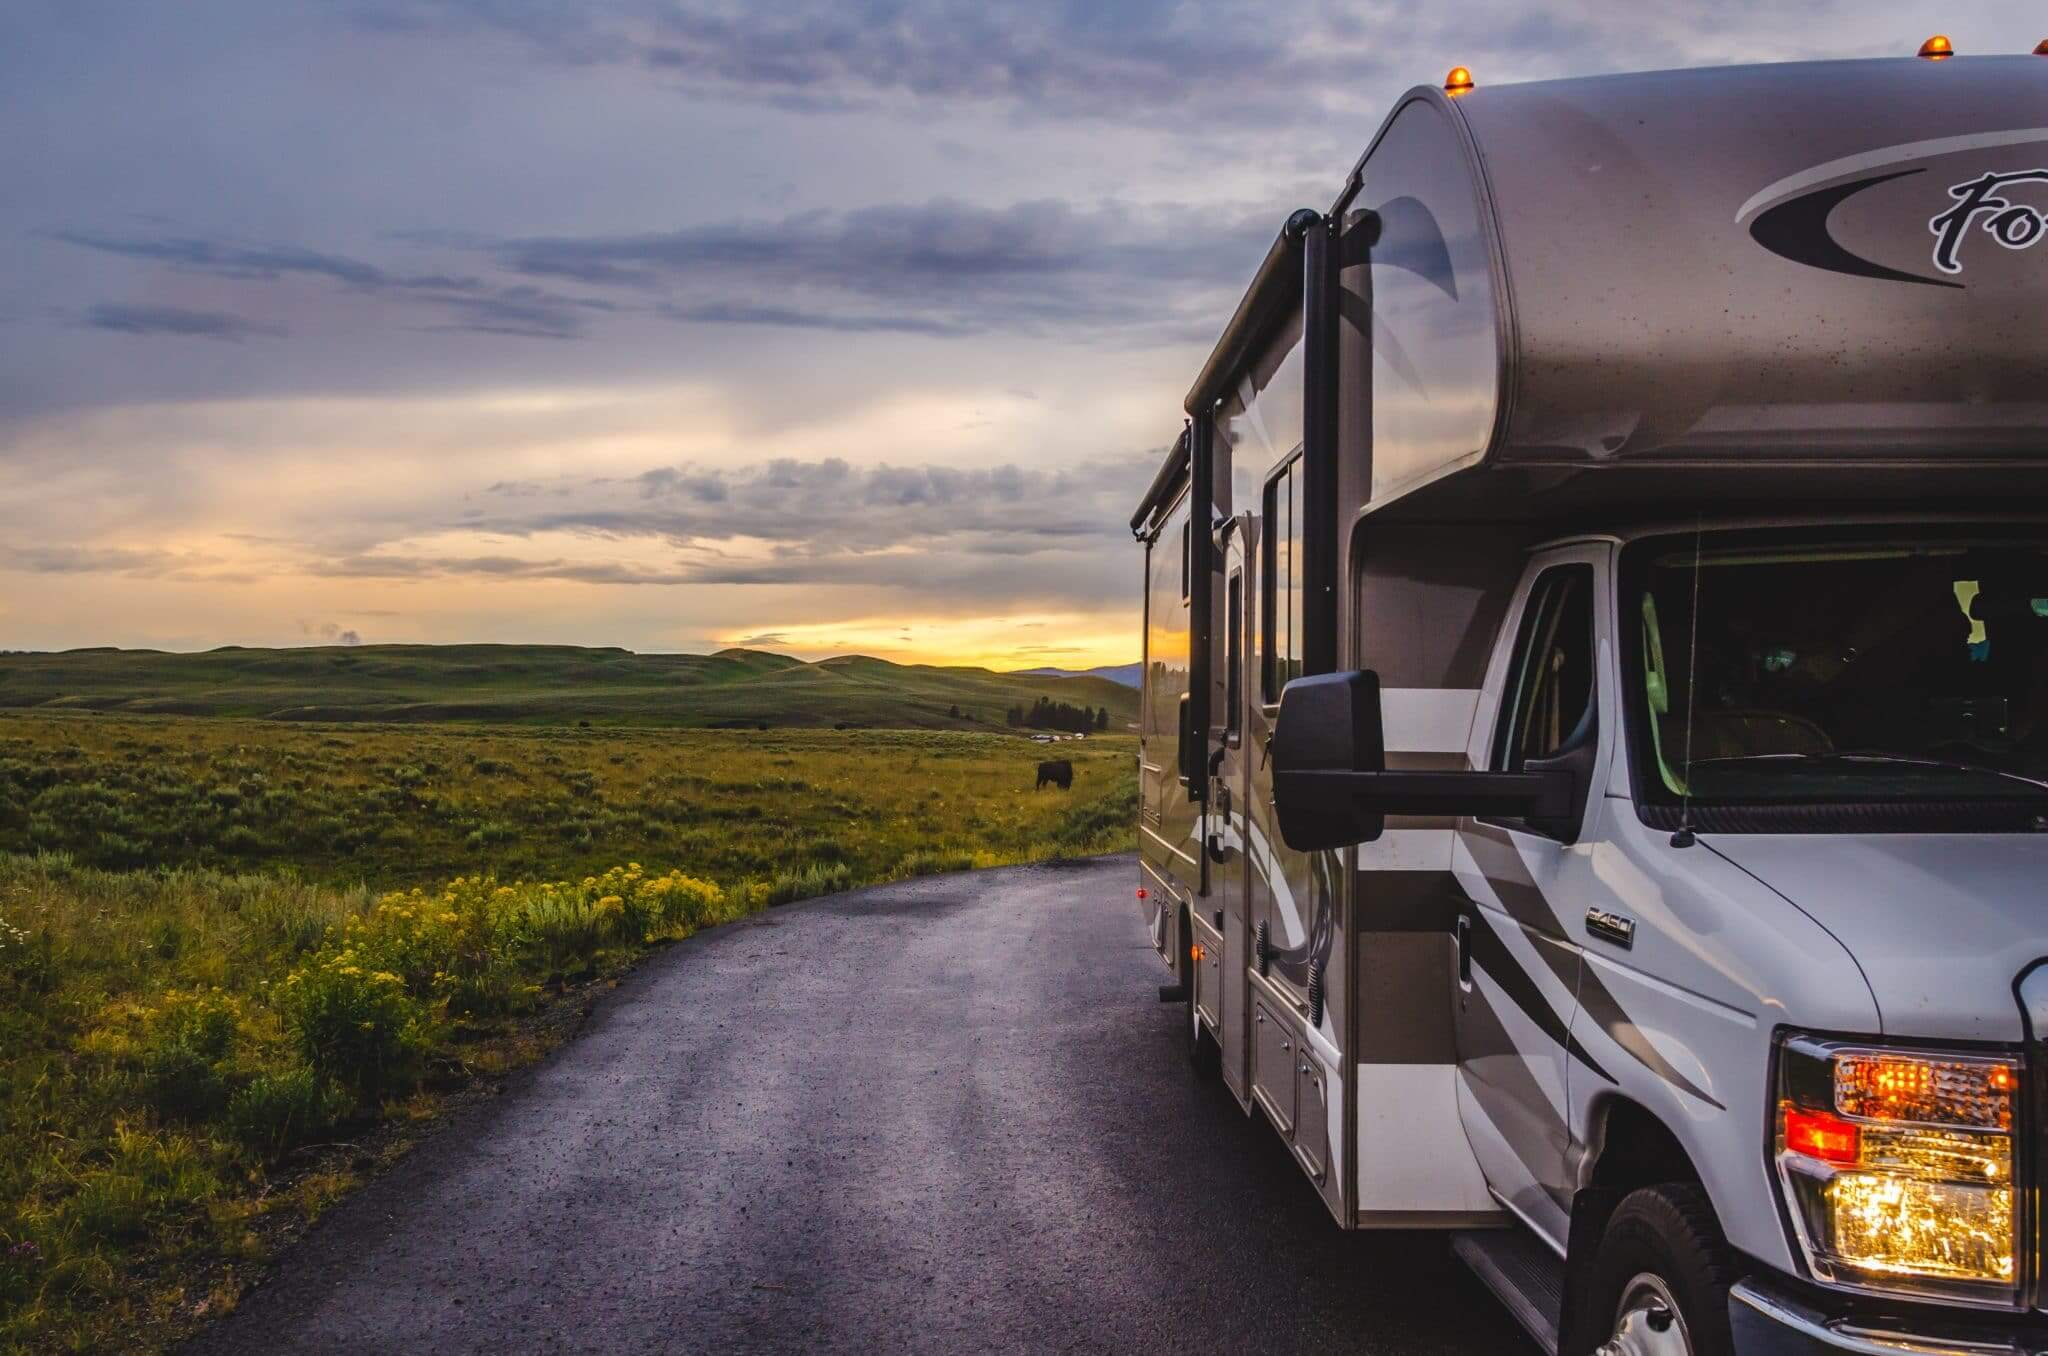 RV in field with sunset in background